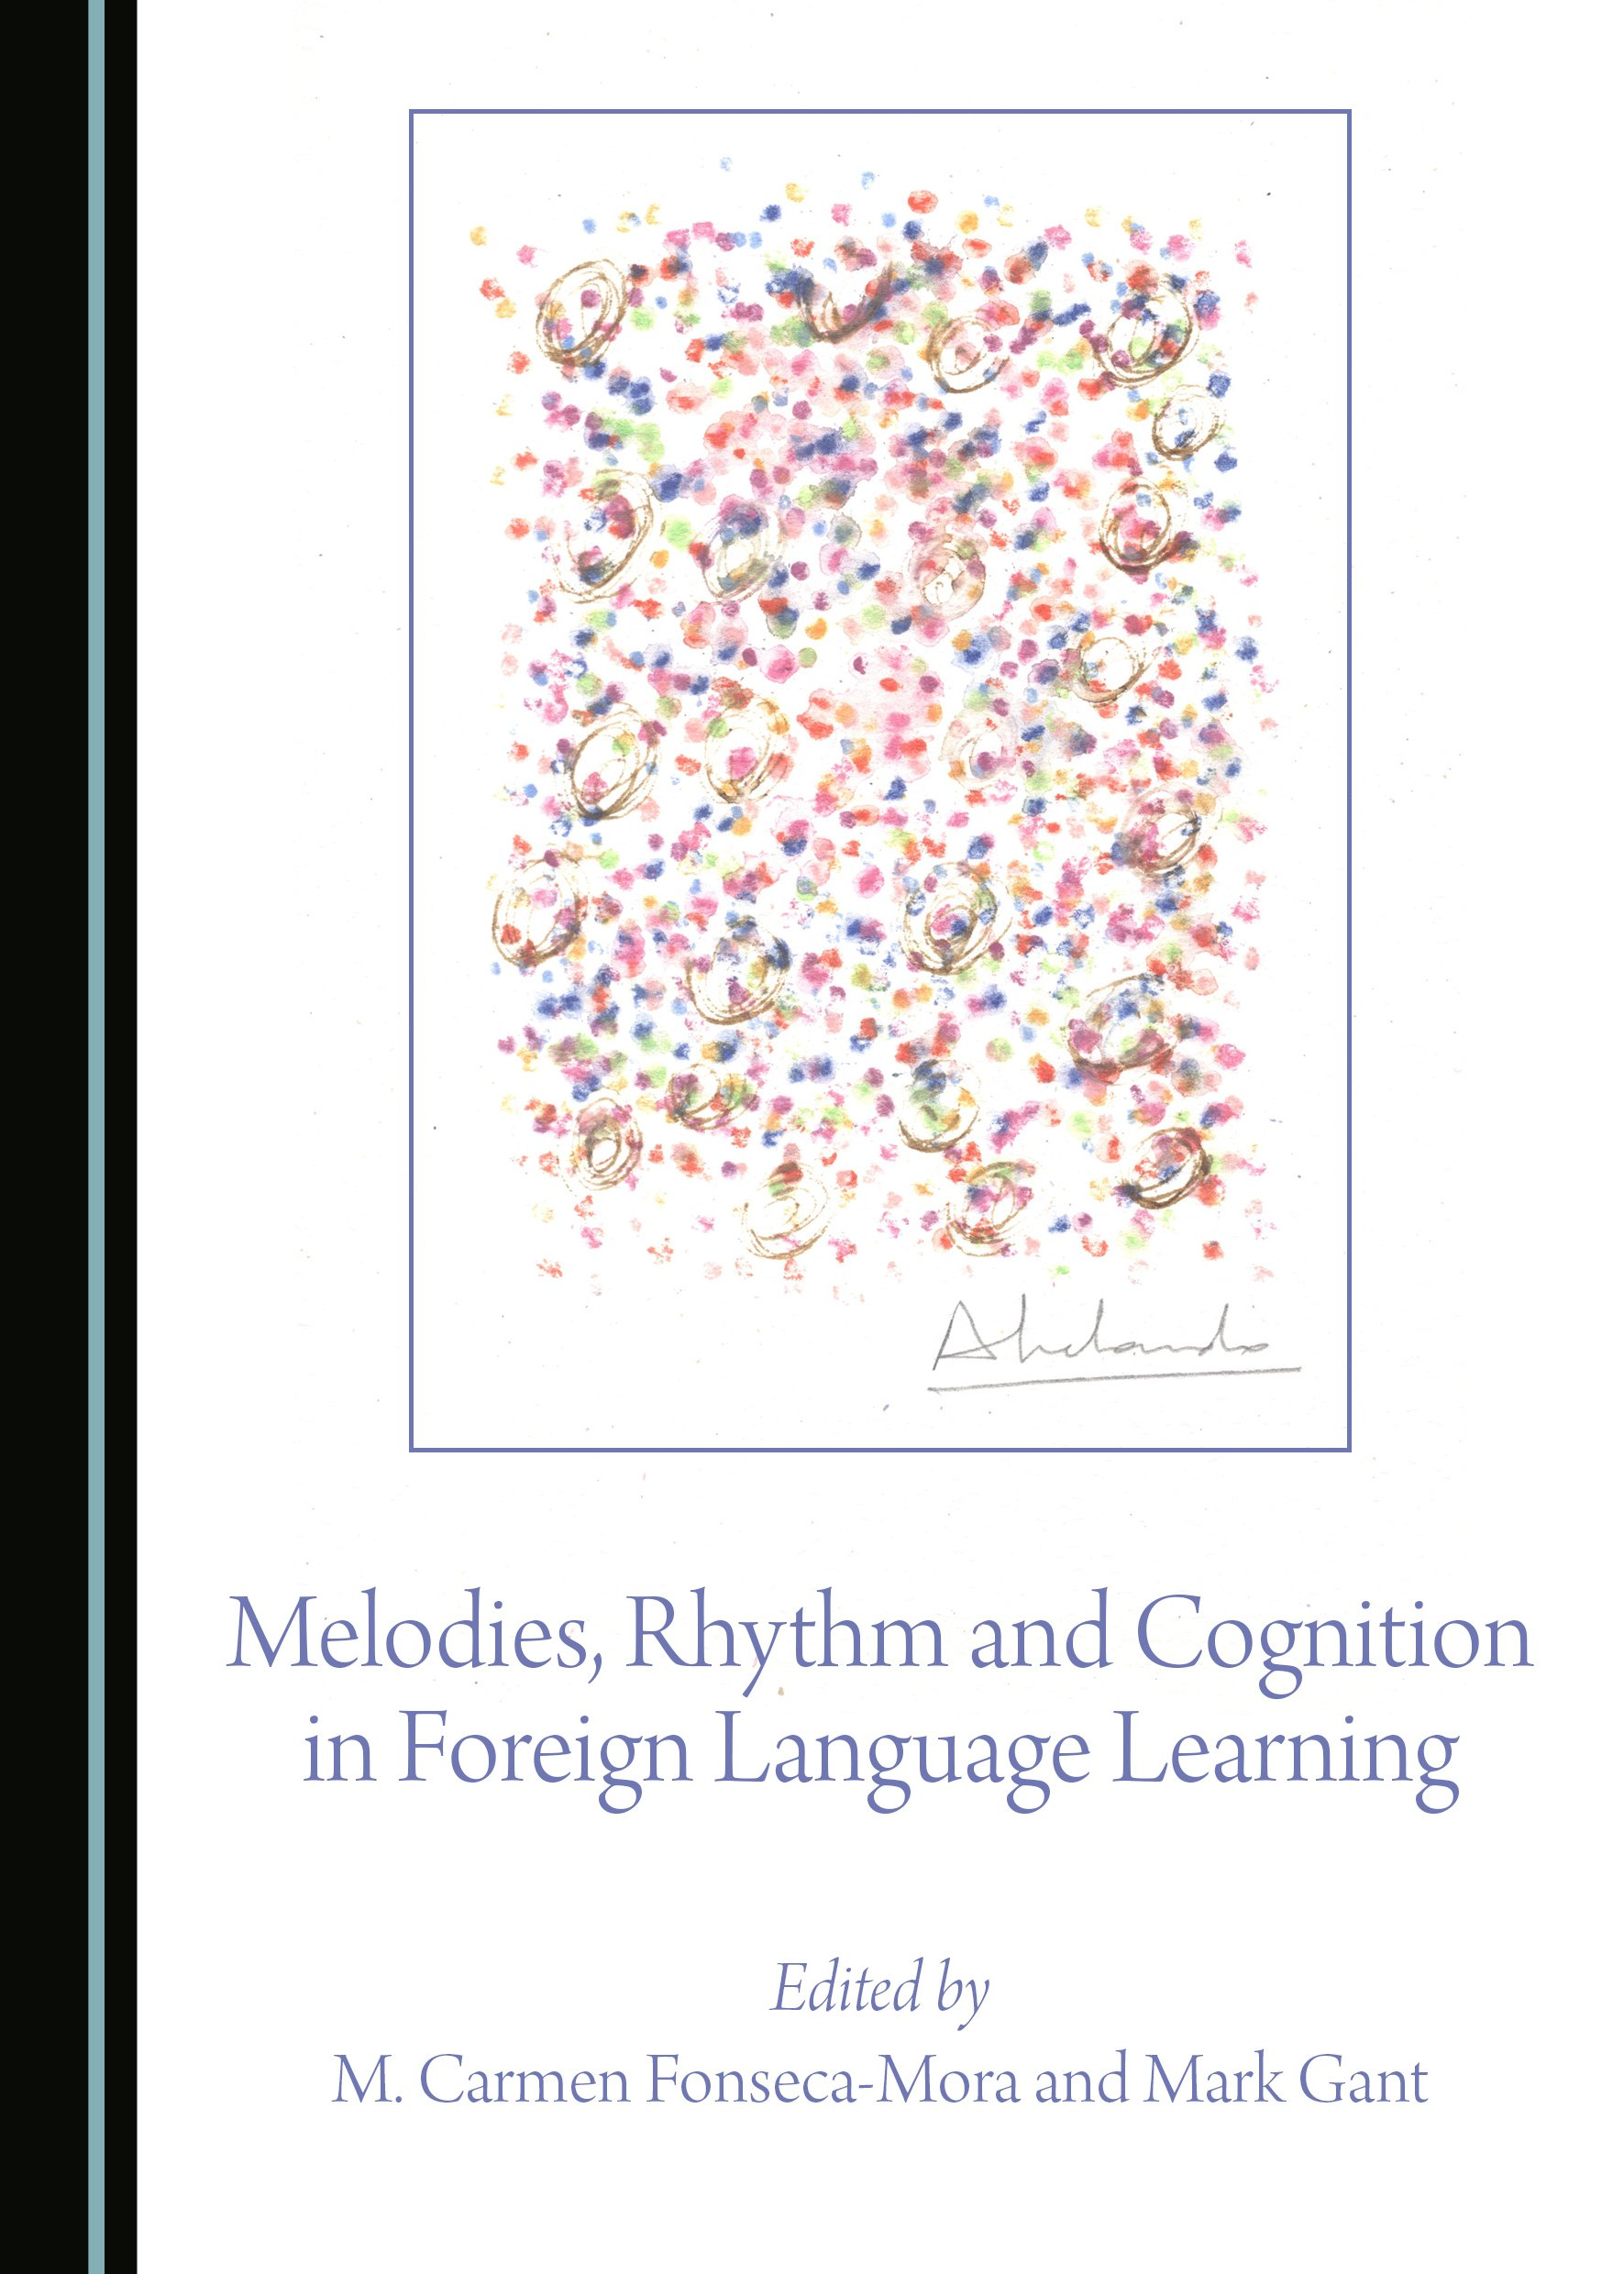 Melodies, Rhythm and Cognition in Foreign Language Learning